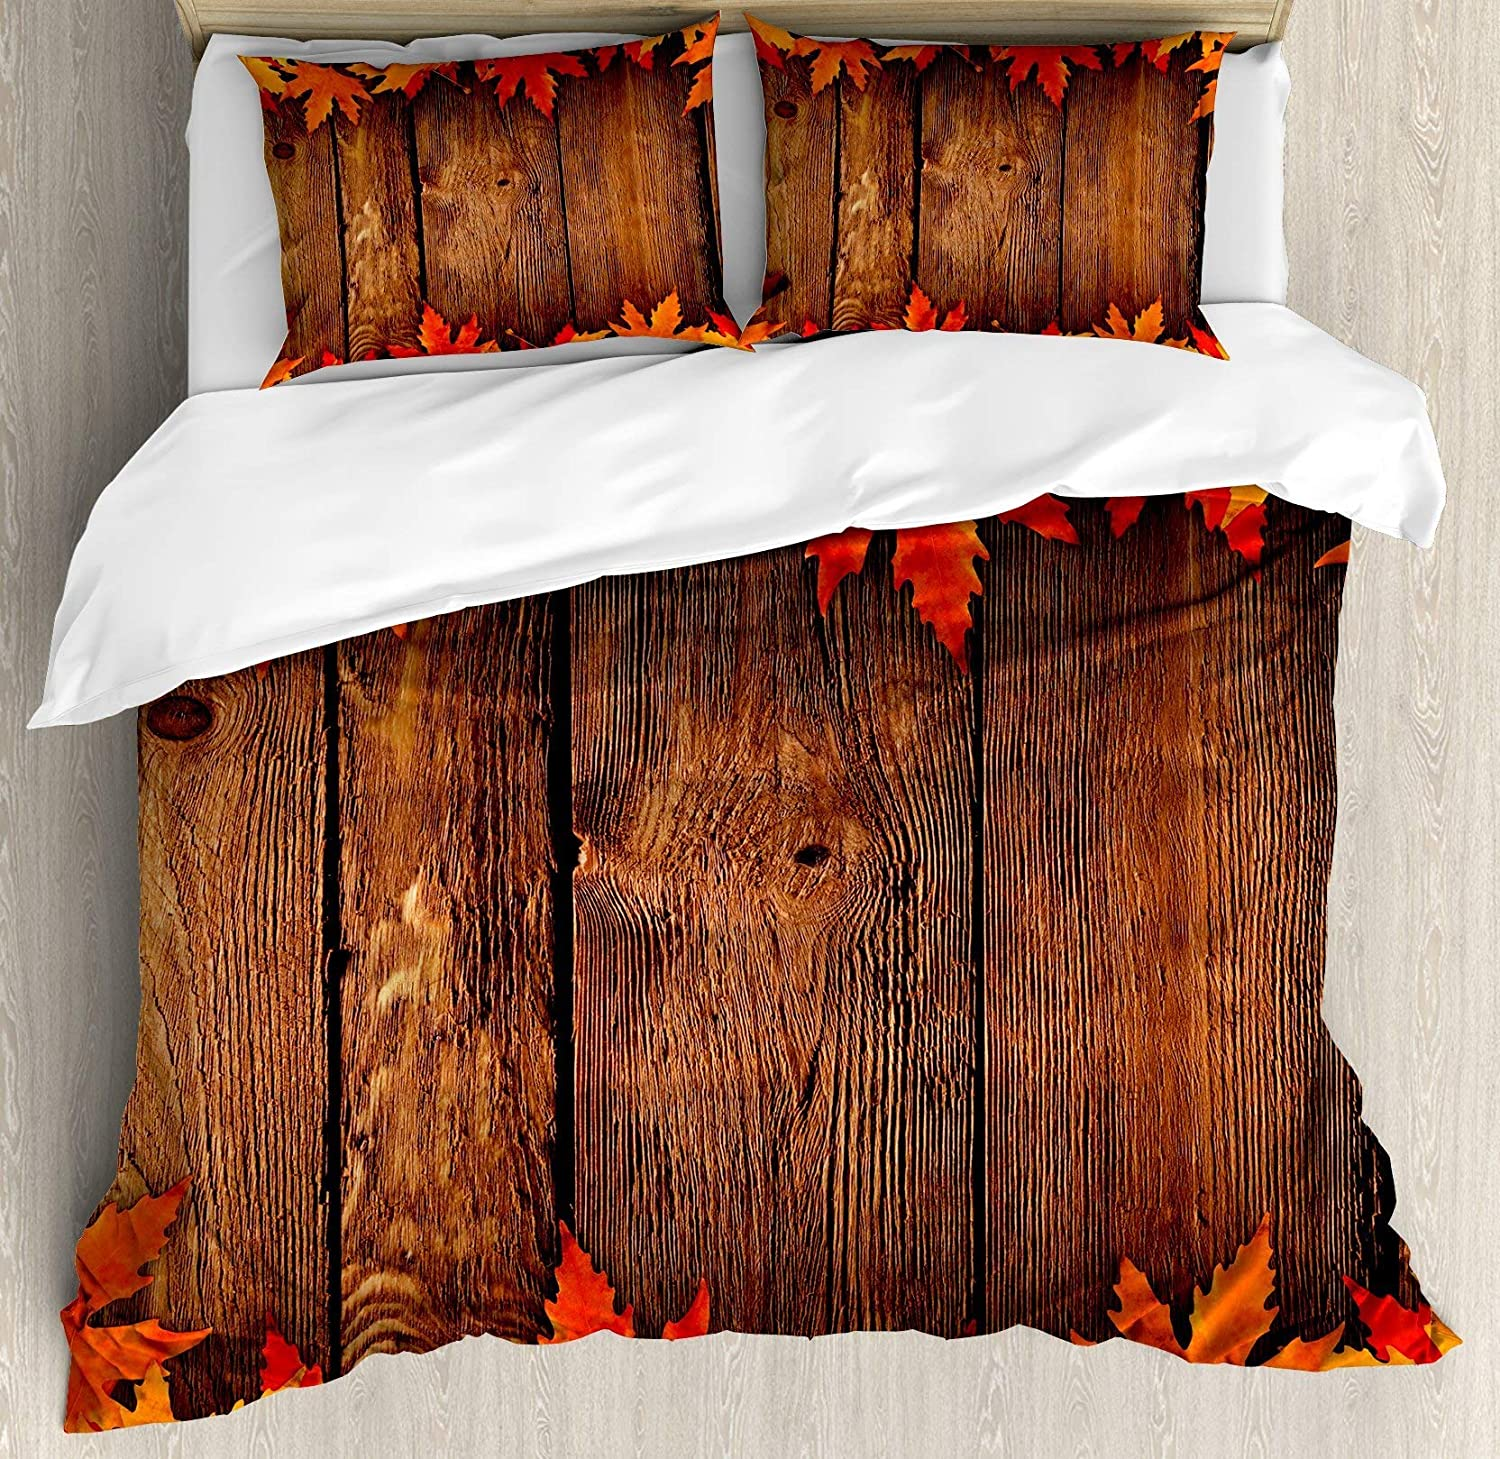 Multi 4 Twin BULING Fall 4pc Bedding Set Twin Size, Dry Leaves Poured onto Wooden Board Cabin Cottage Rustic Country Life Theme Print Floral Lightweight Microfiber Duvet Cover Set, Brown orange